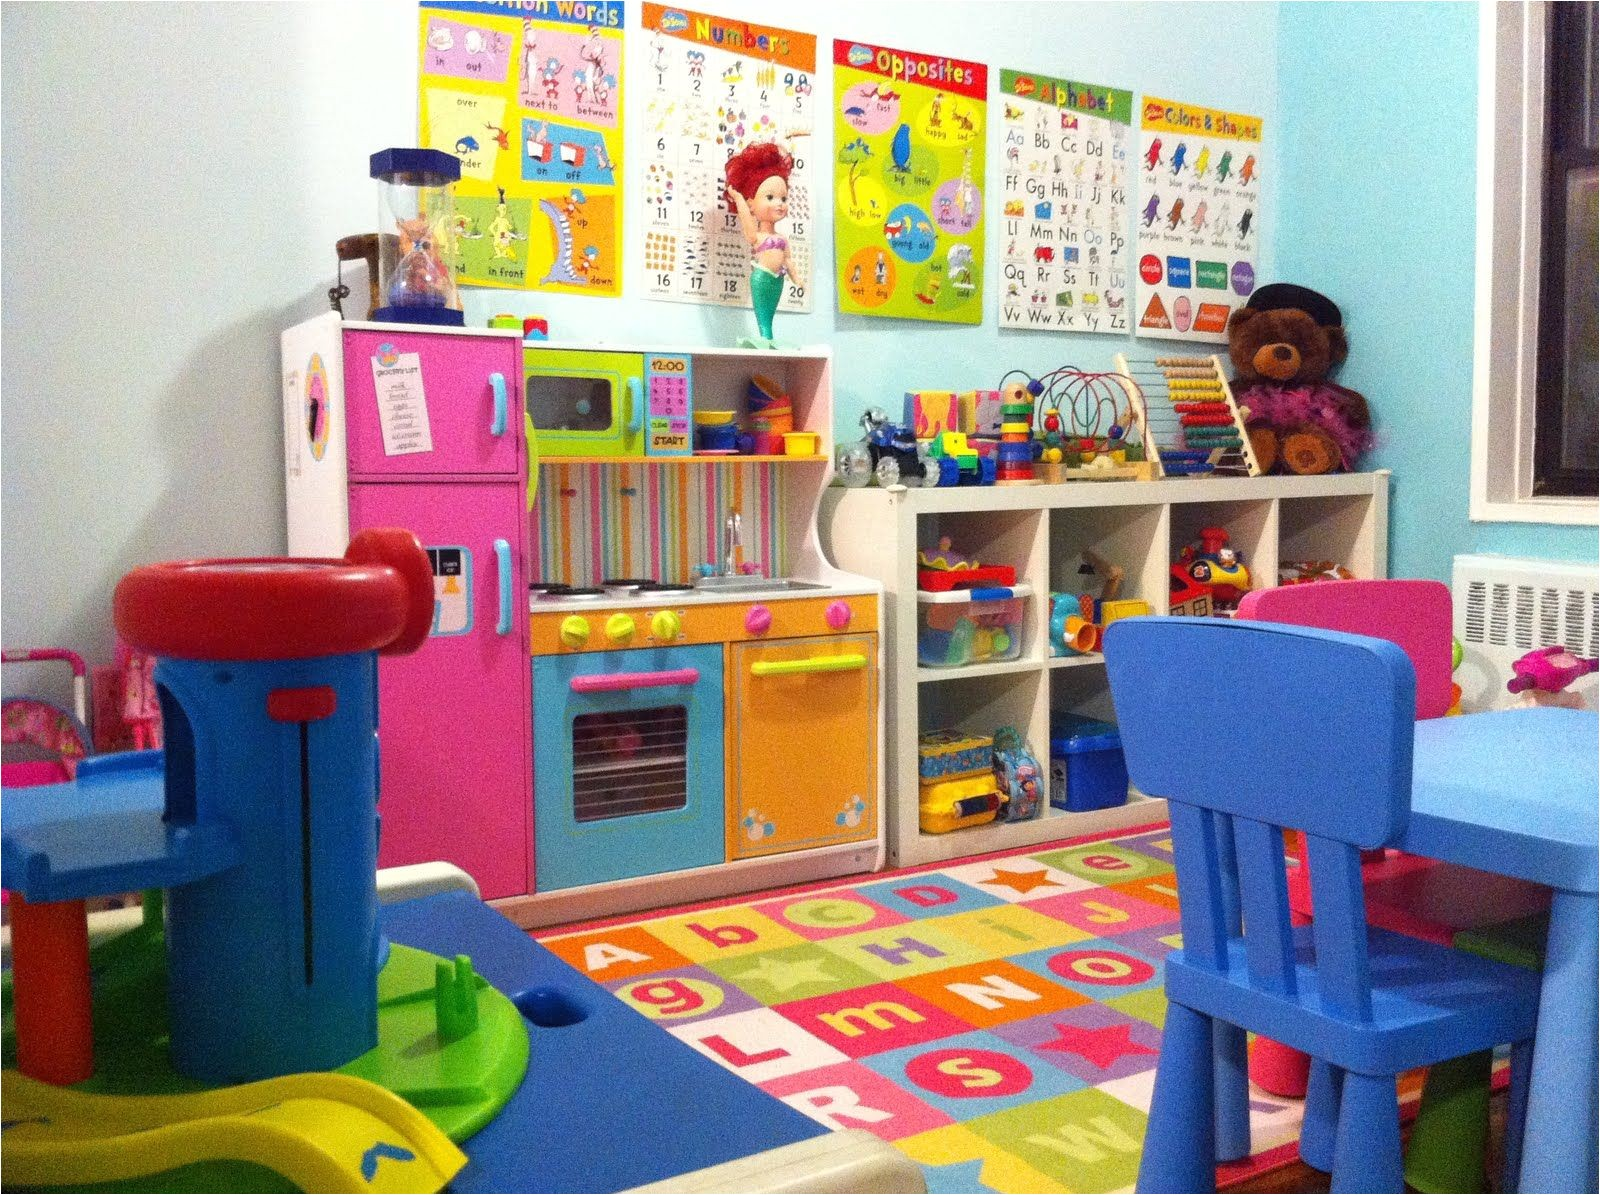 Home Daycare Setup In Living Room Home Daycare Setup In Living Room Google Search Day